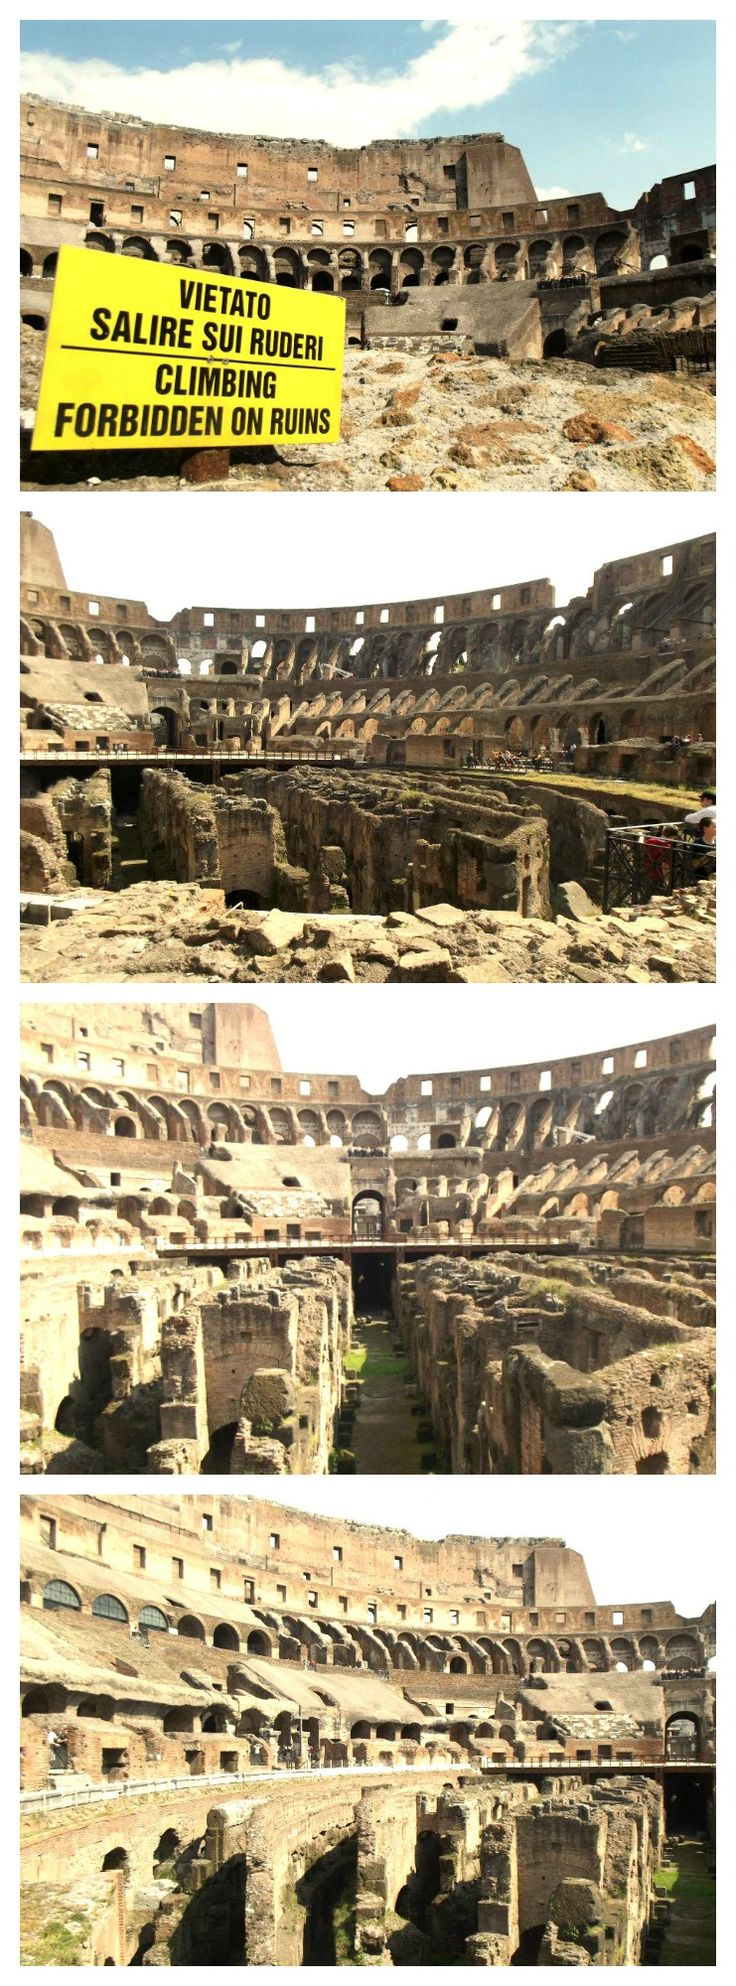 Inside the Colosseum in Rome!